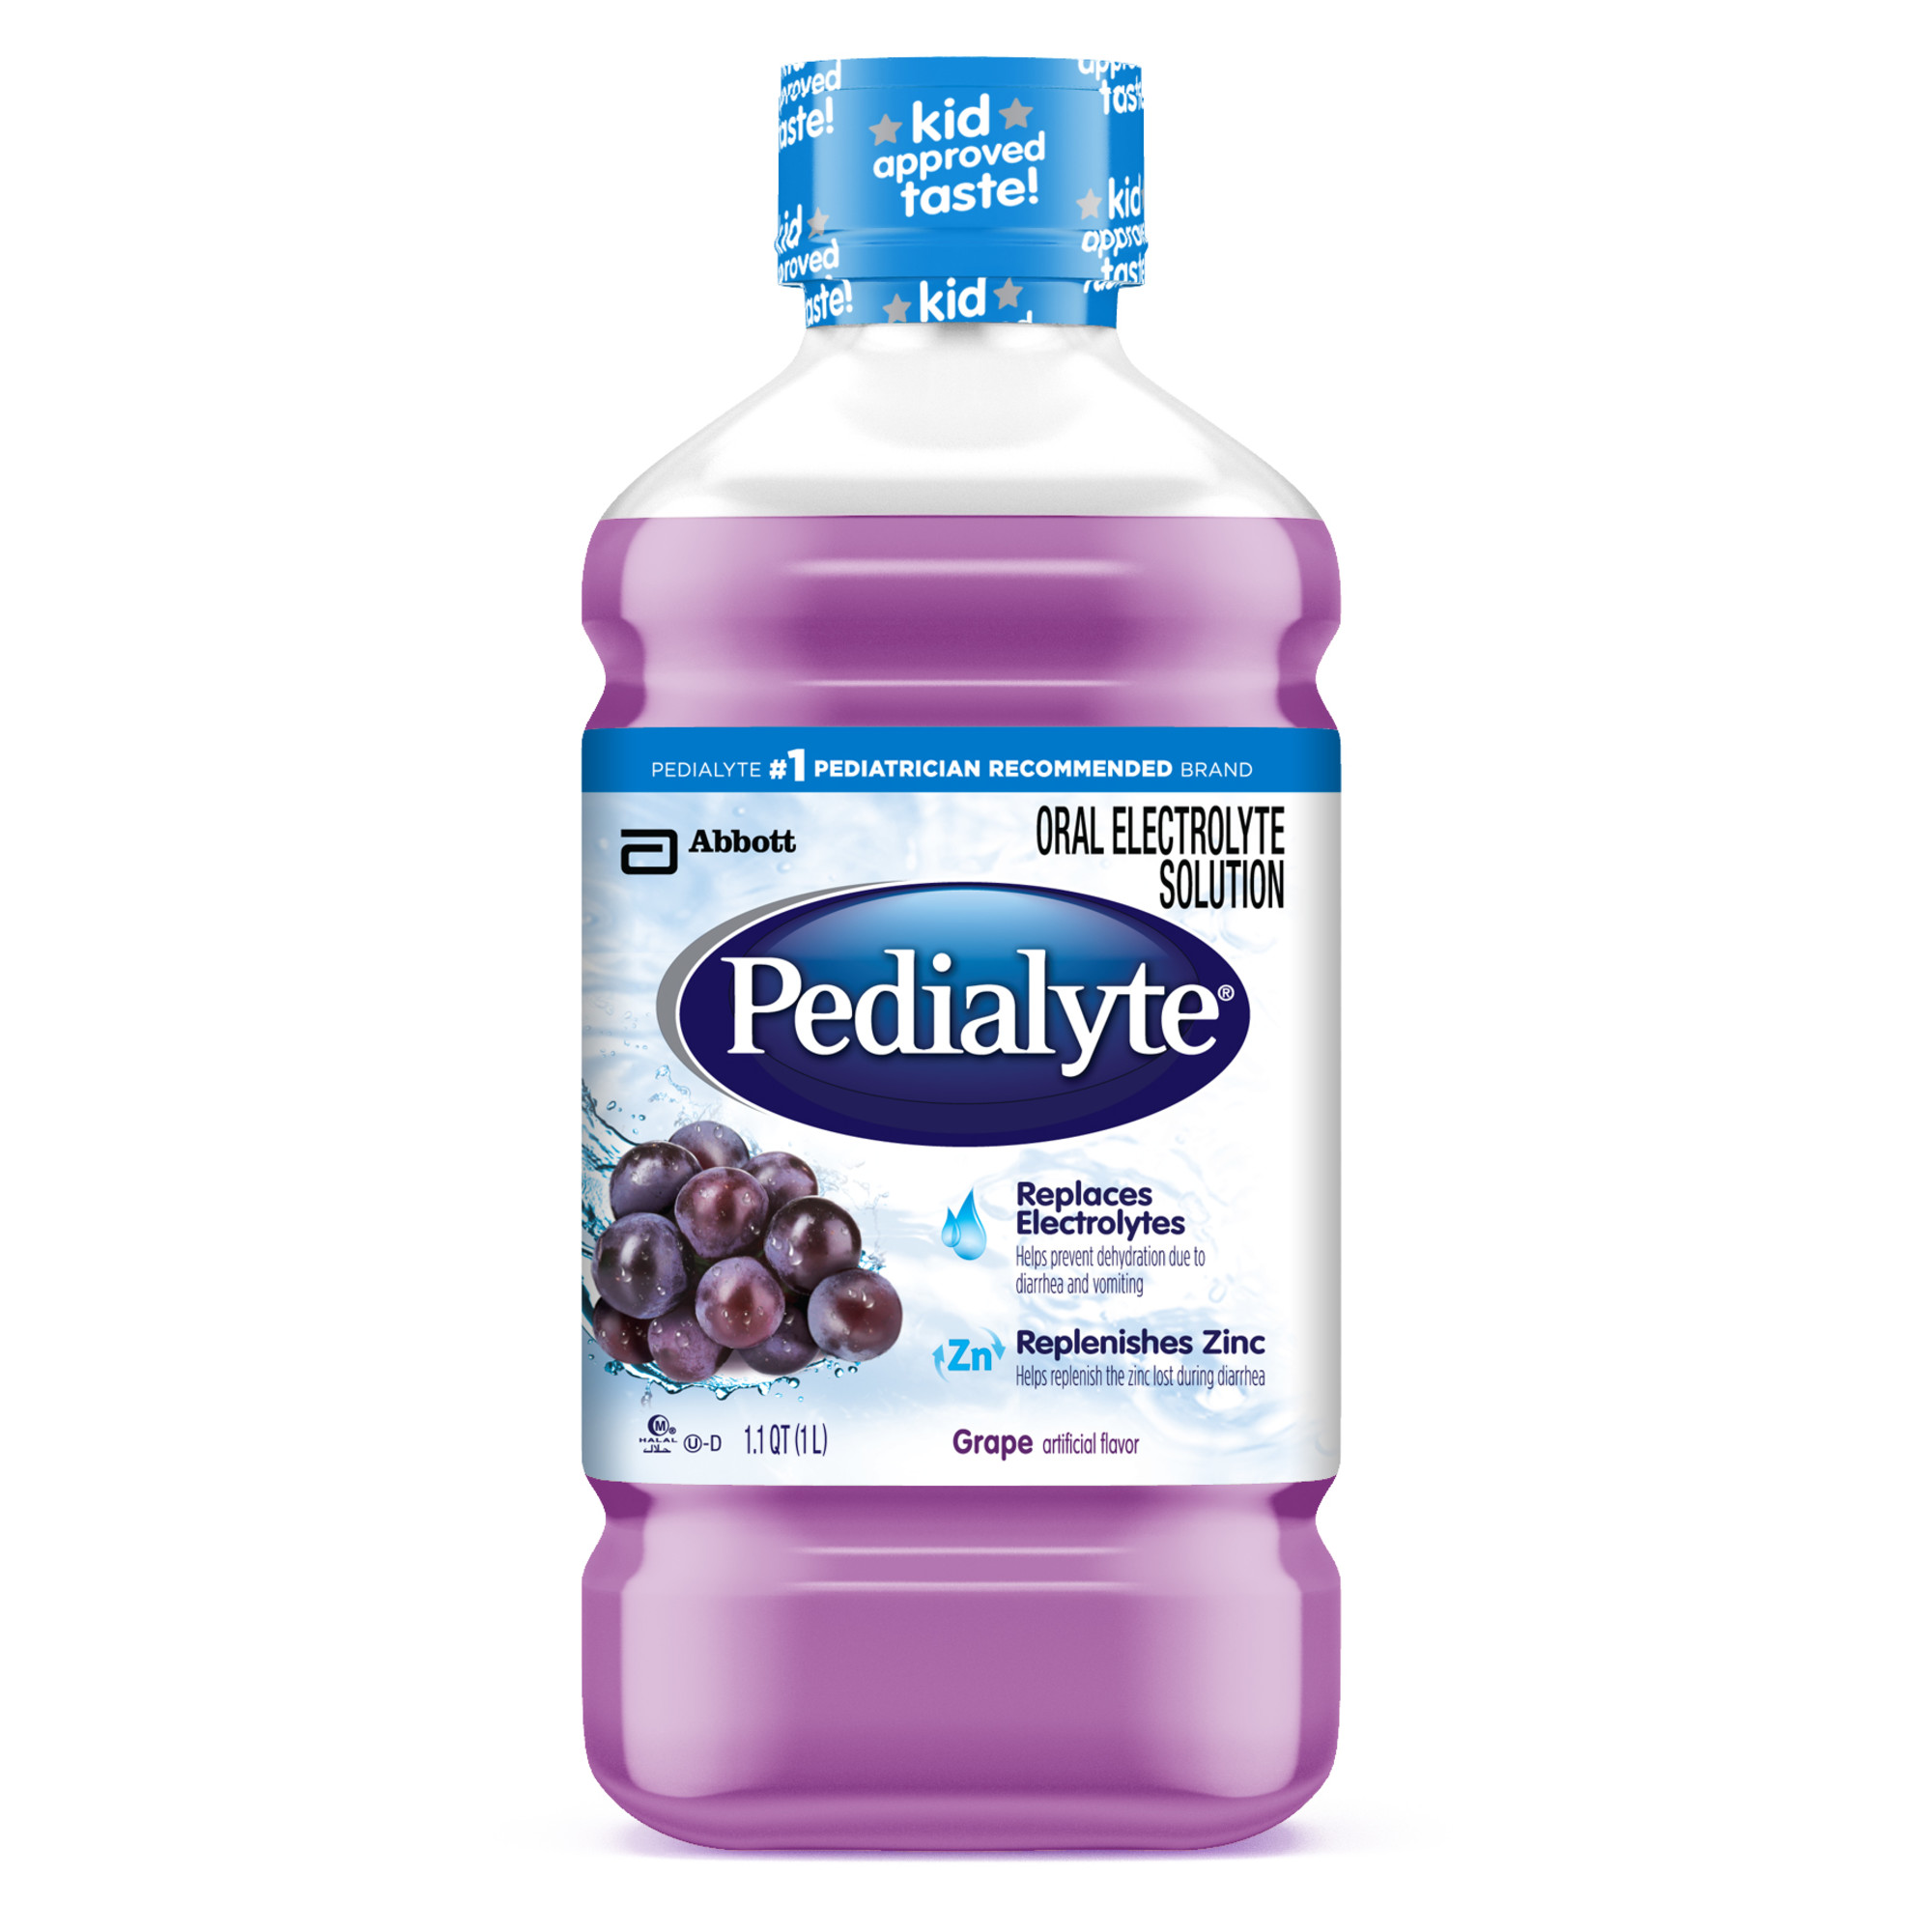 Pedialyte Oral Electrolyte Solution, Grape Flavor, 1-L